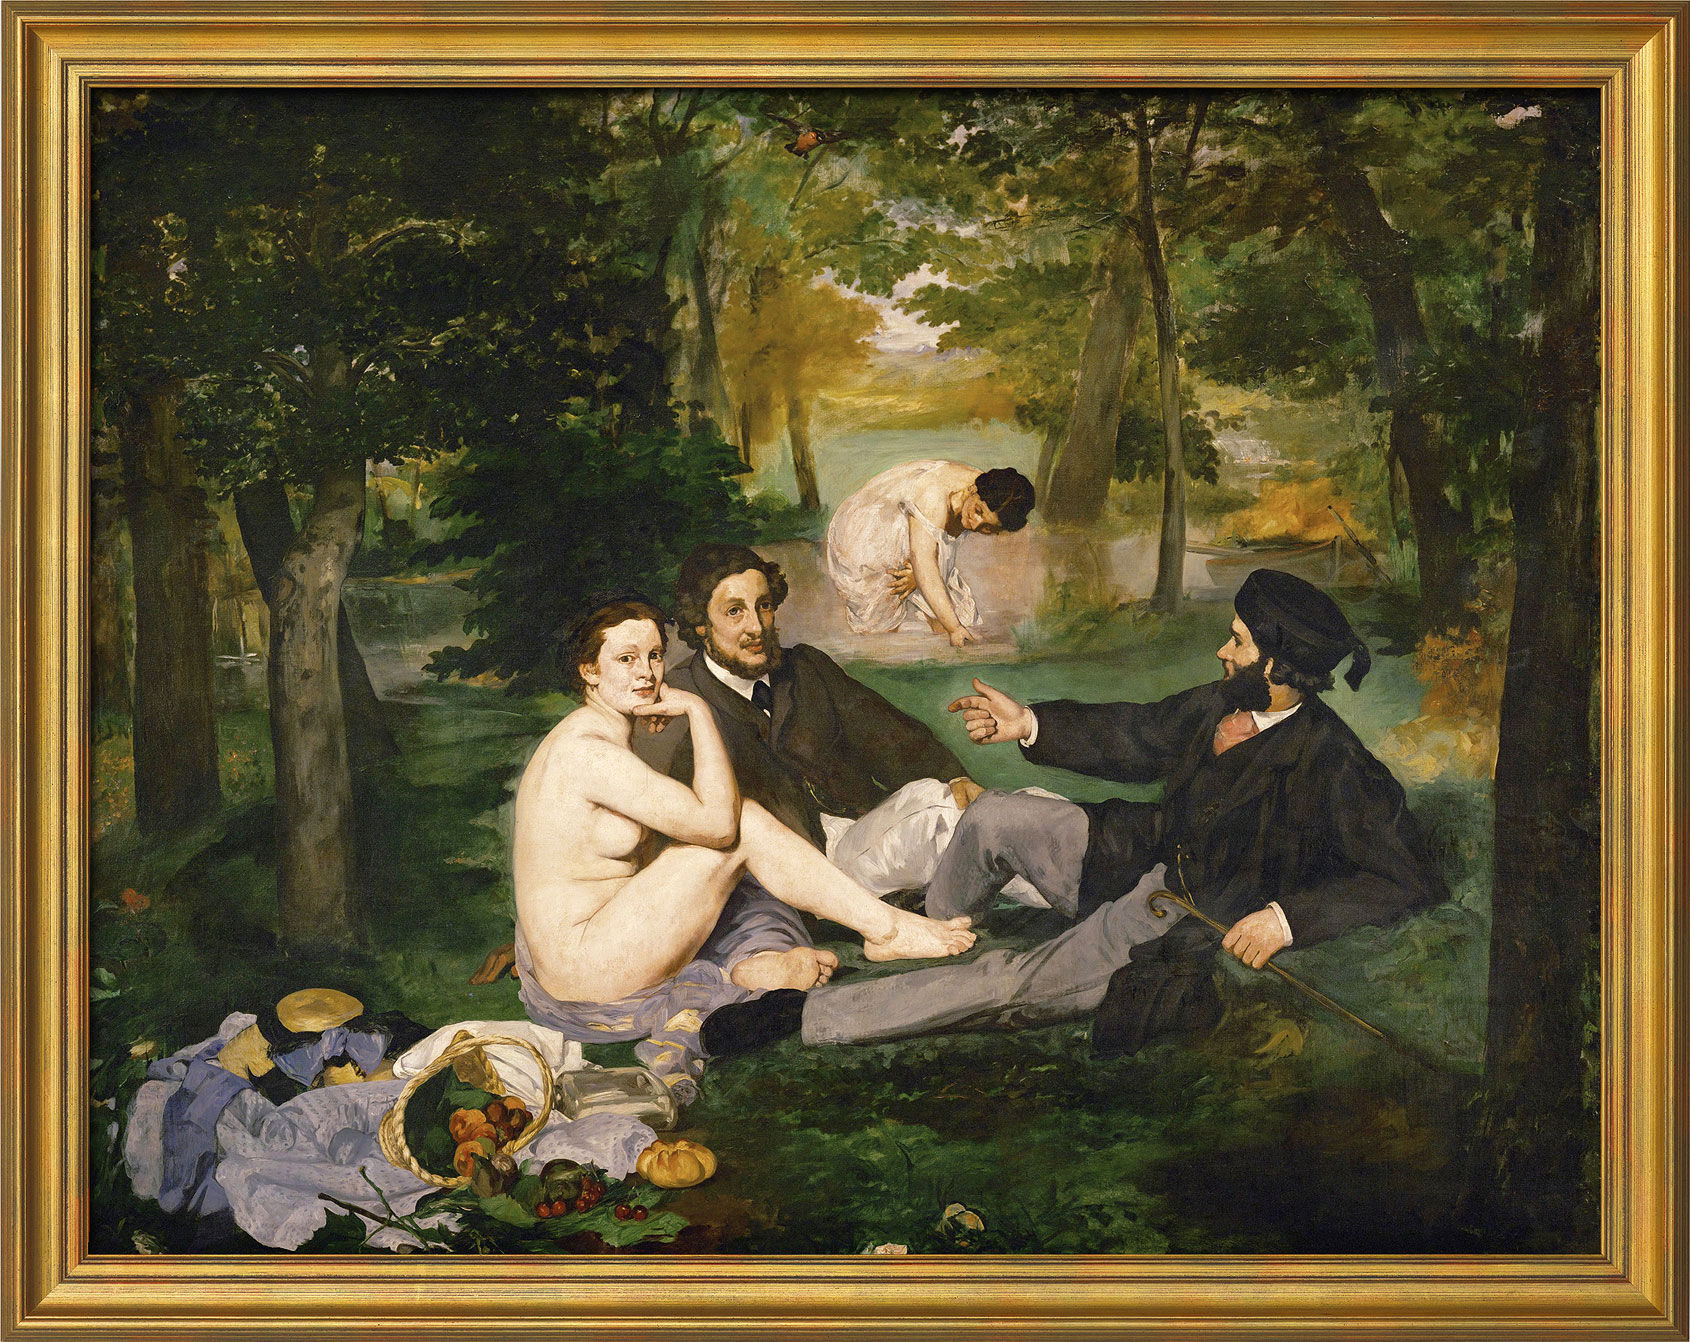 """Painting """"Le Déjeuner sur l'herbe"""" (The Luncheon on the Grass) in museum framing"""